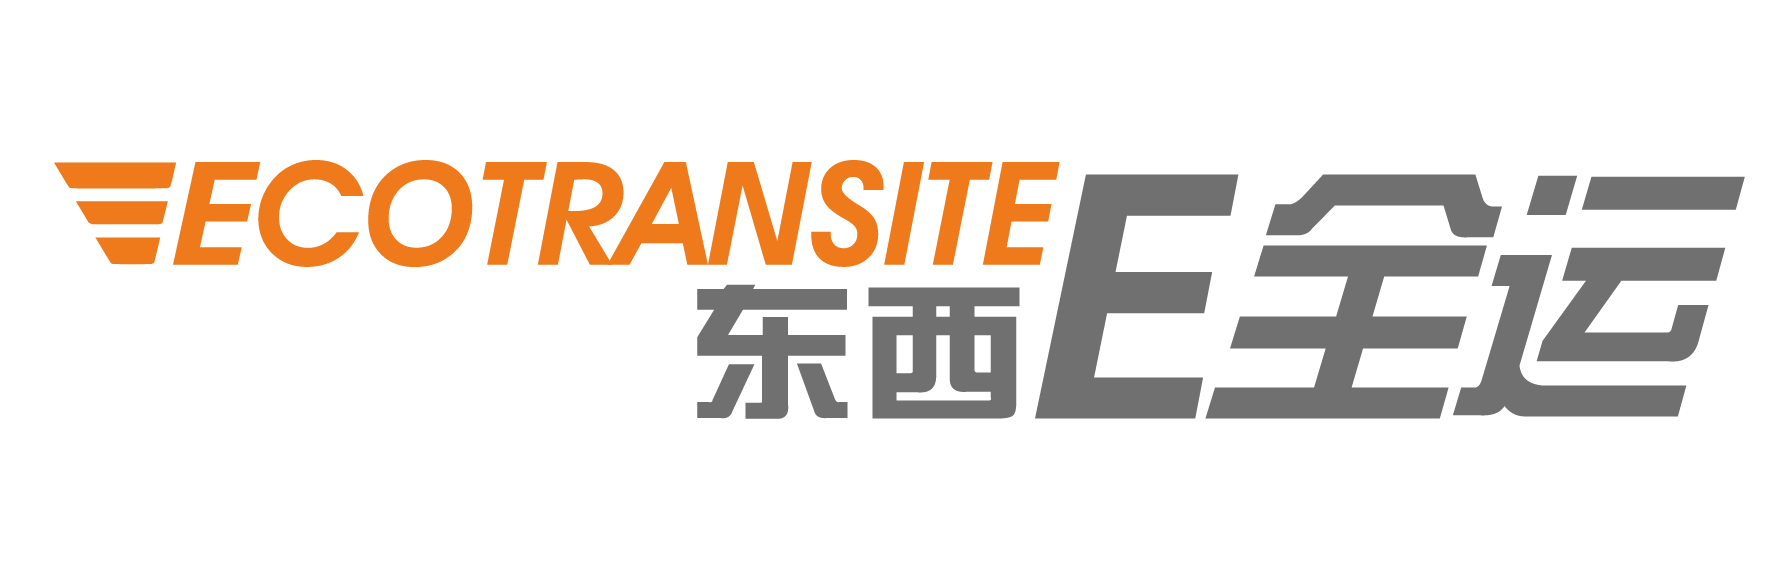 ECOTRANSITE logo